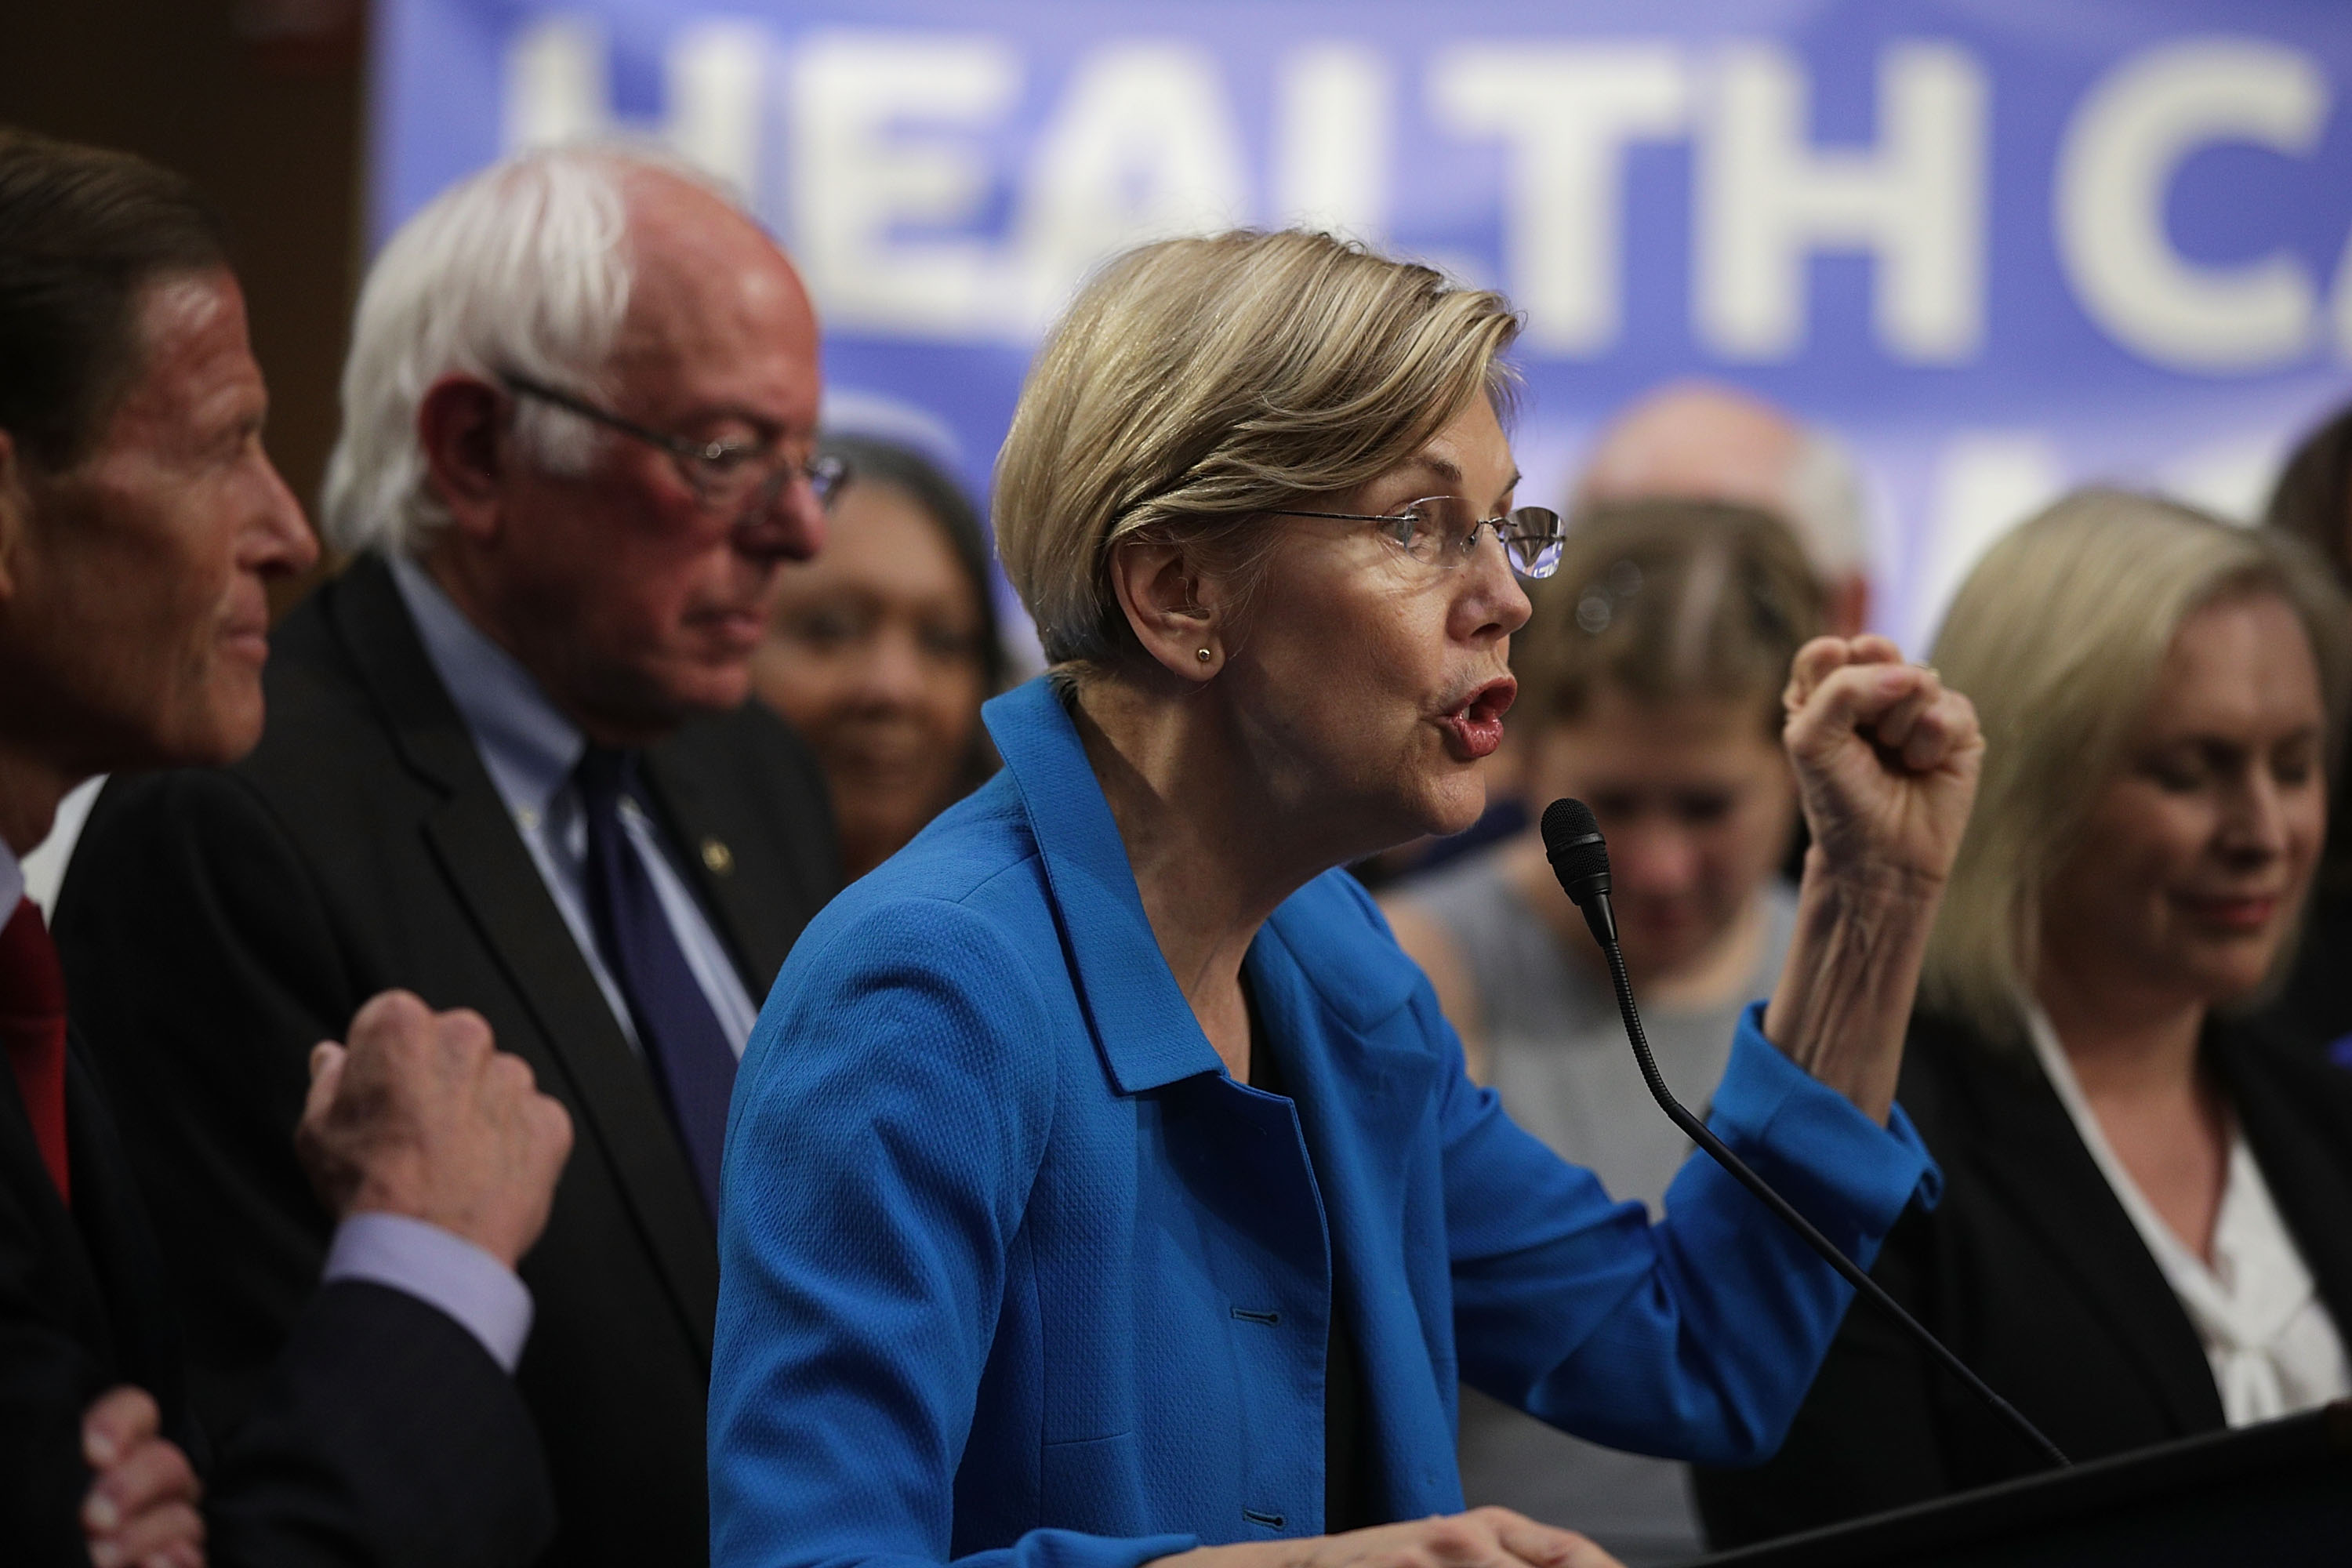 U.S. Sen. Elizabeth Warren (D-MA) (C) speaks on health care as Sen. Bernie Sanders (I-VT) (2nd L) listens during an event September 13, 2017 on Capitol Hill in Washington, DC